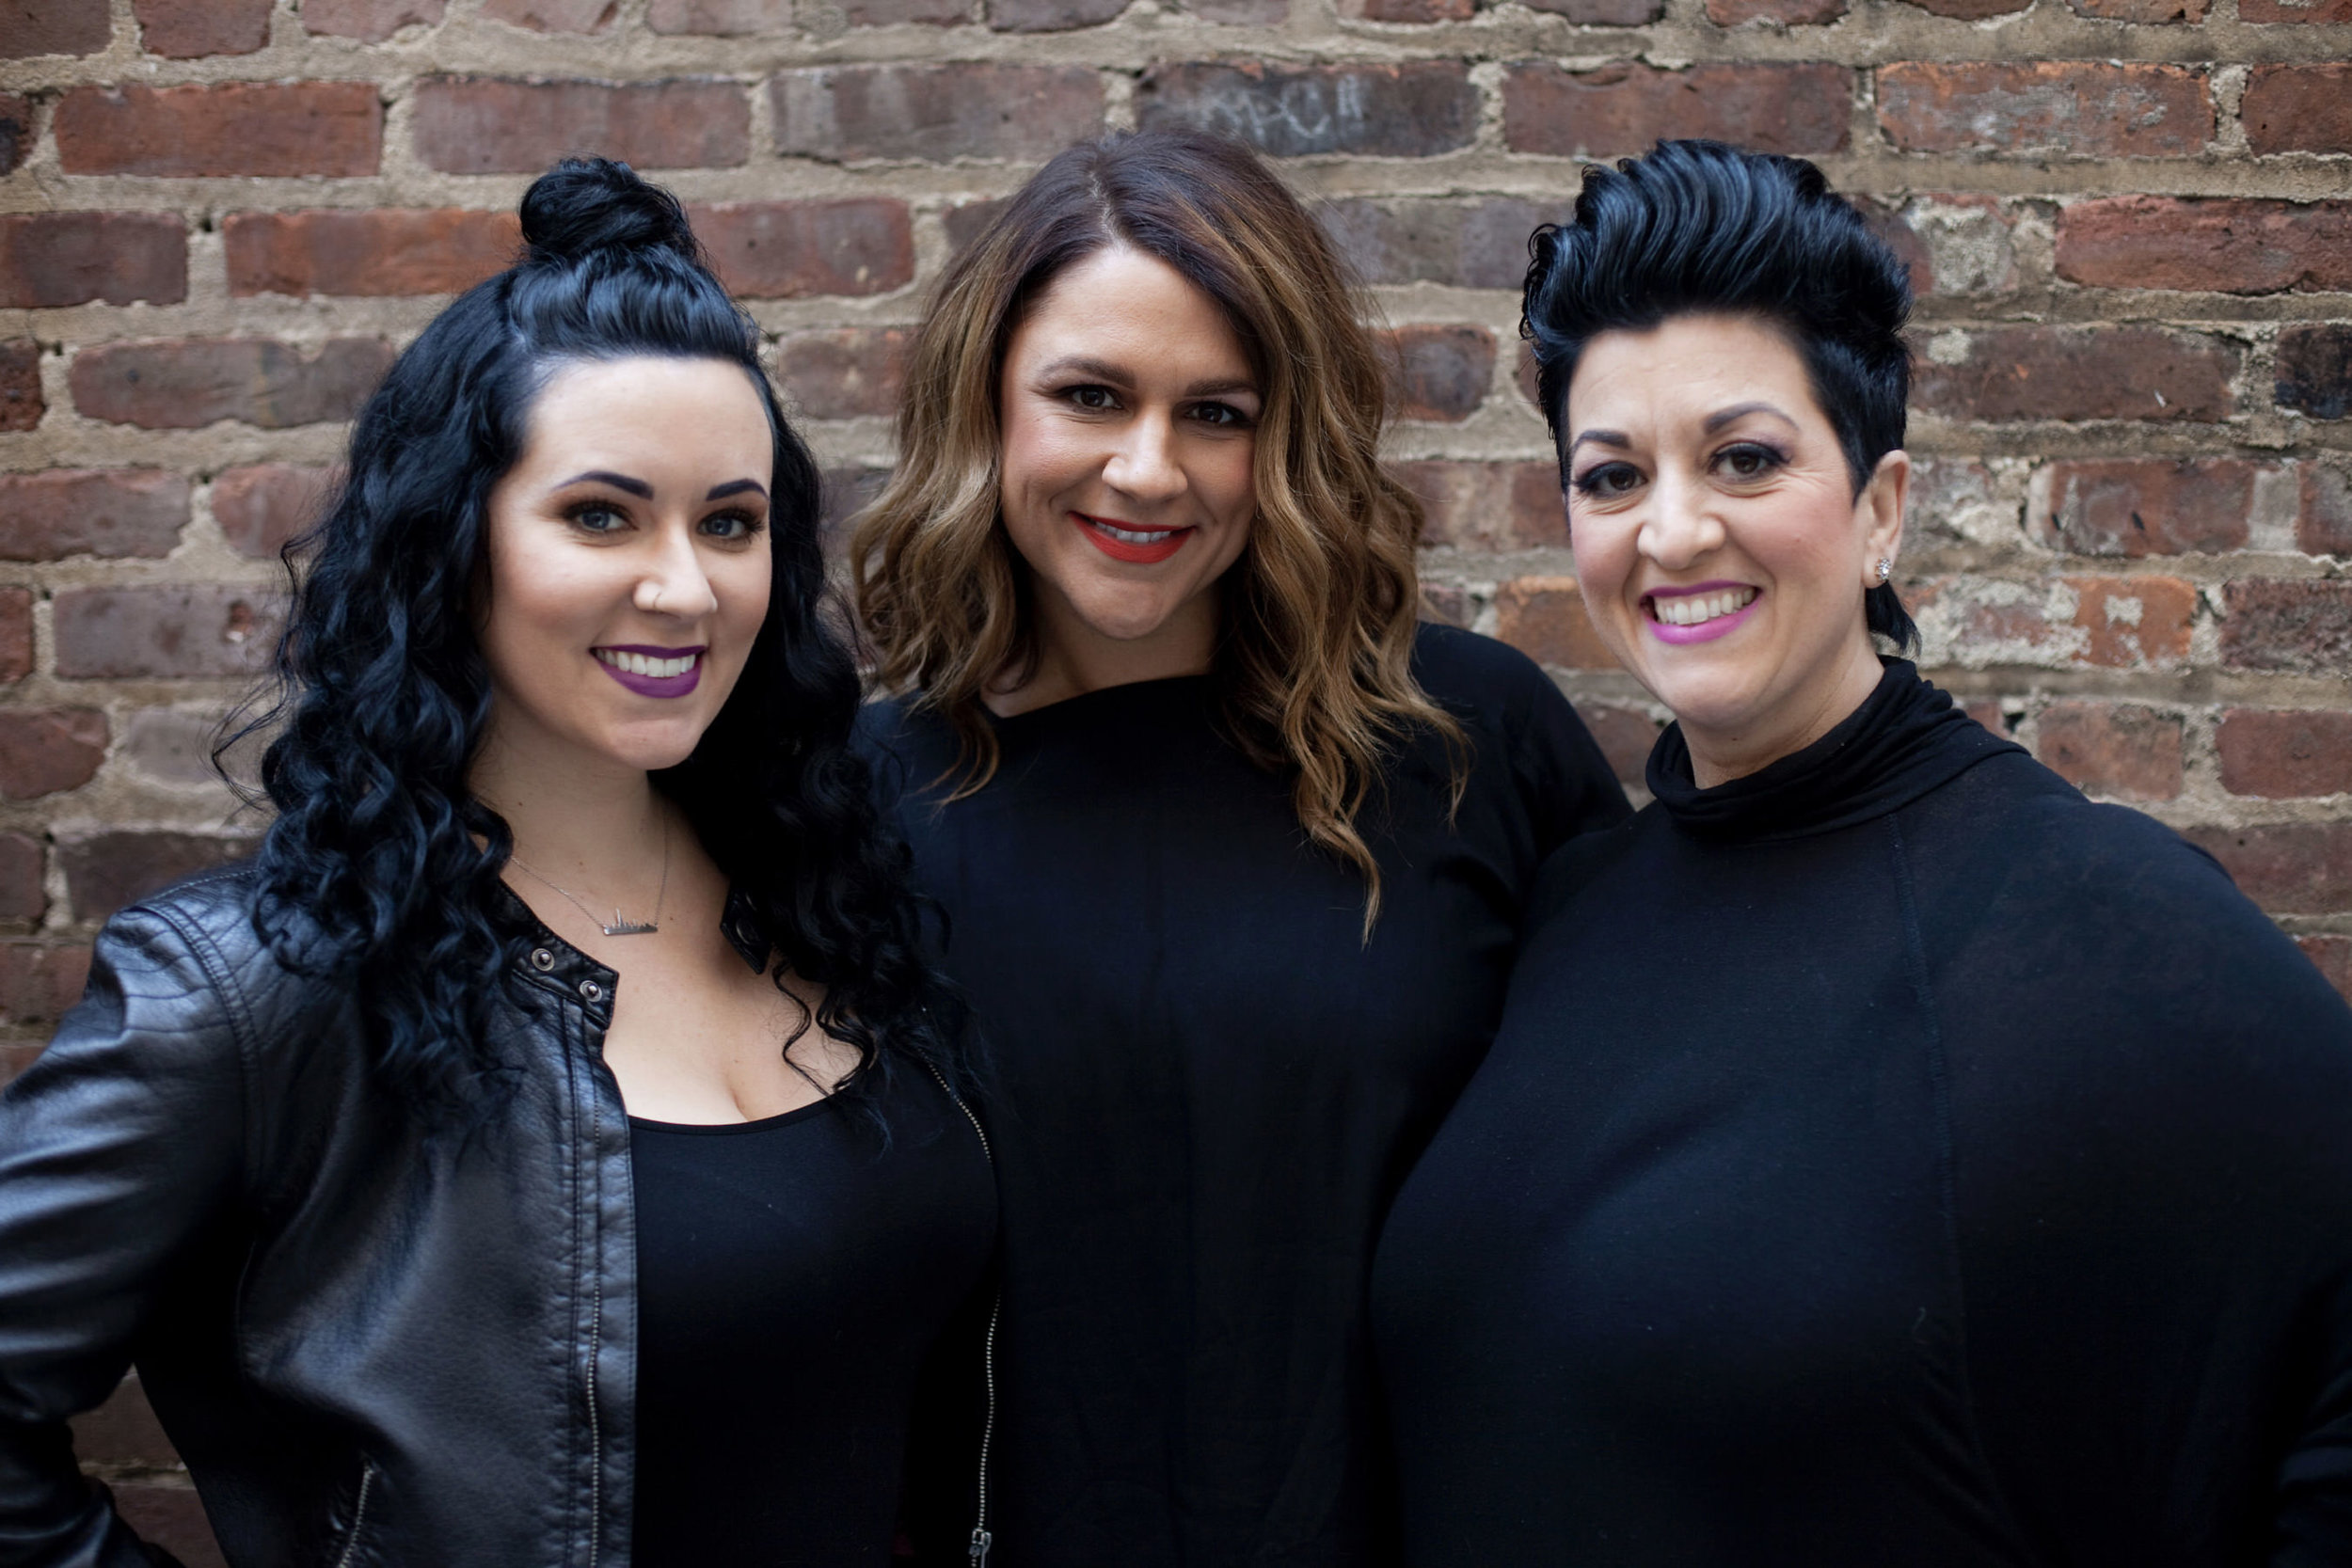 The best stylists in Brooklyn - Our stylists are relaxed and easy to talk to, but they also sweat the details. We'll make you feel at home the moment you walk in, and you'll leave feeling confident that you're looking your best.